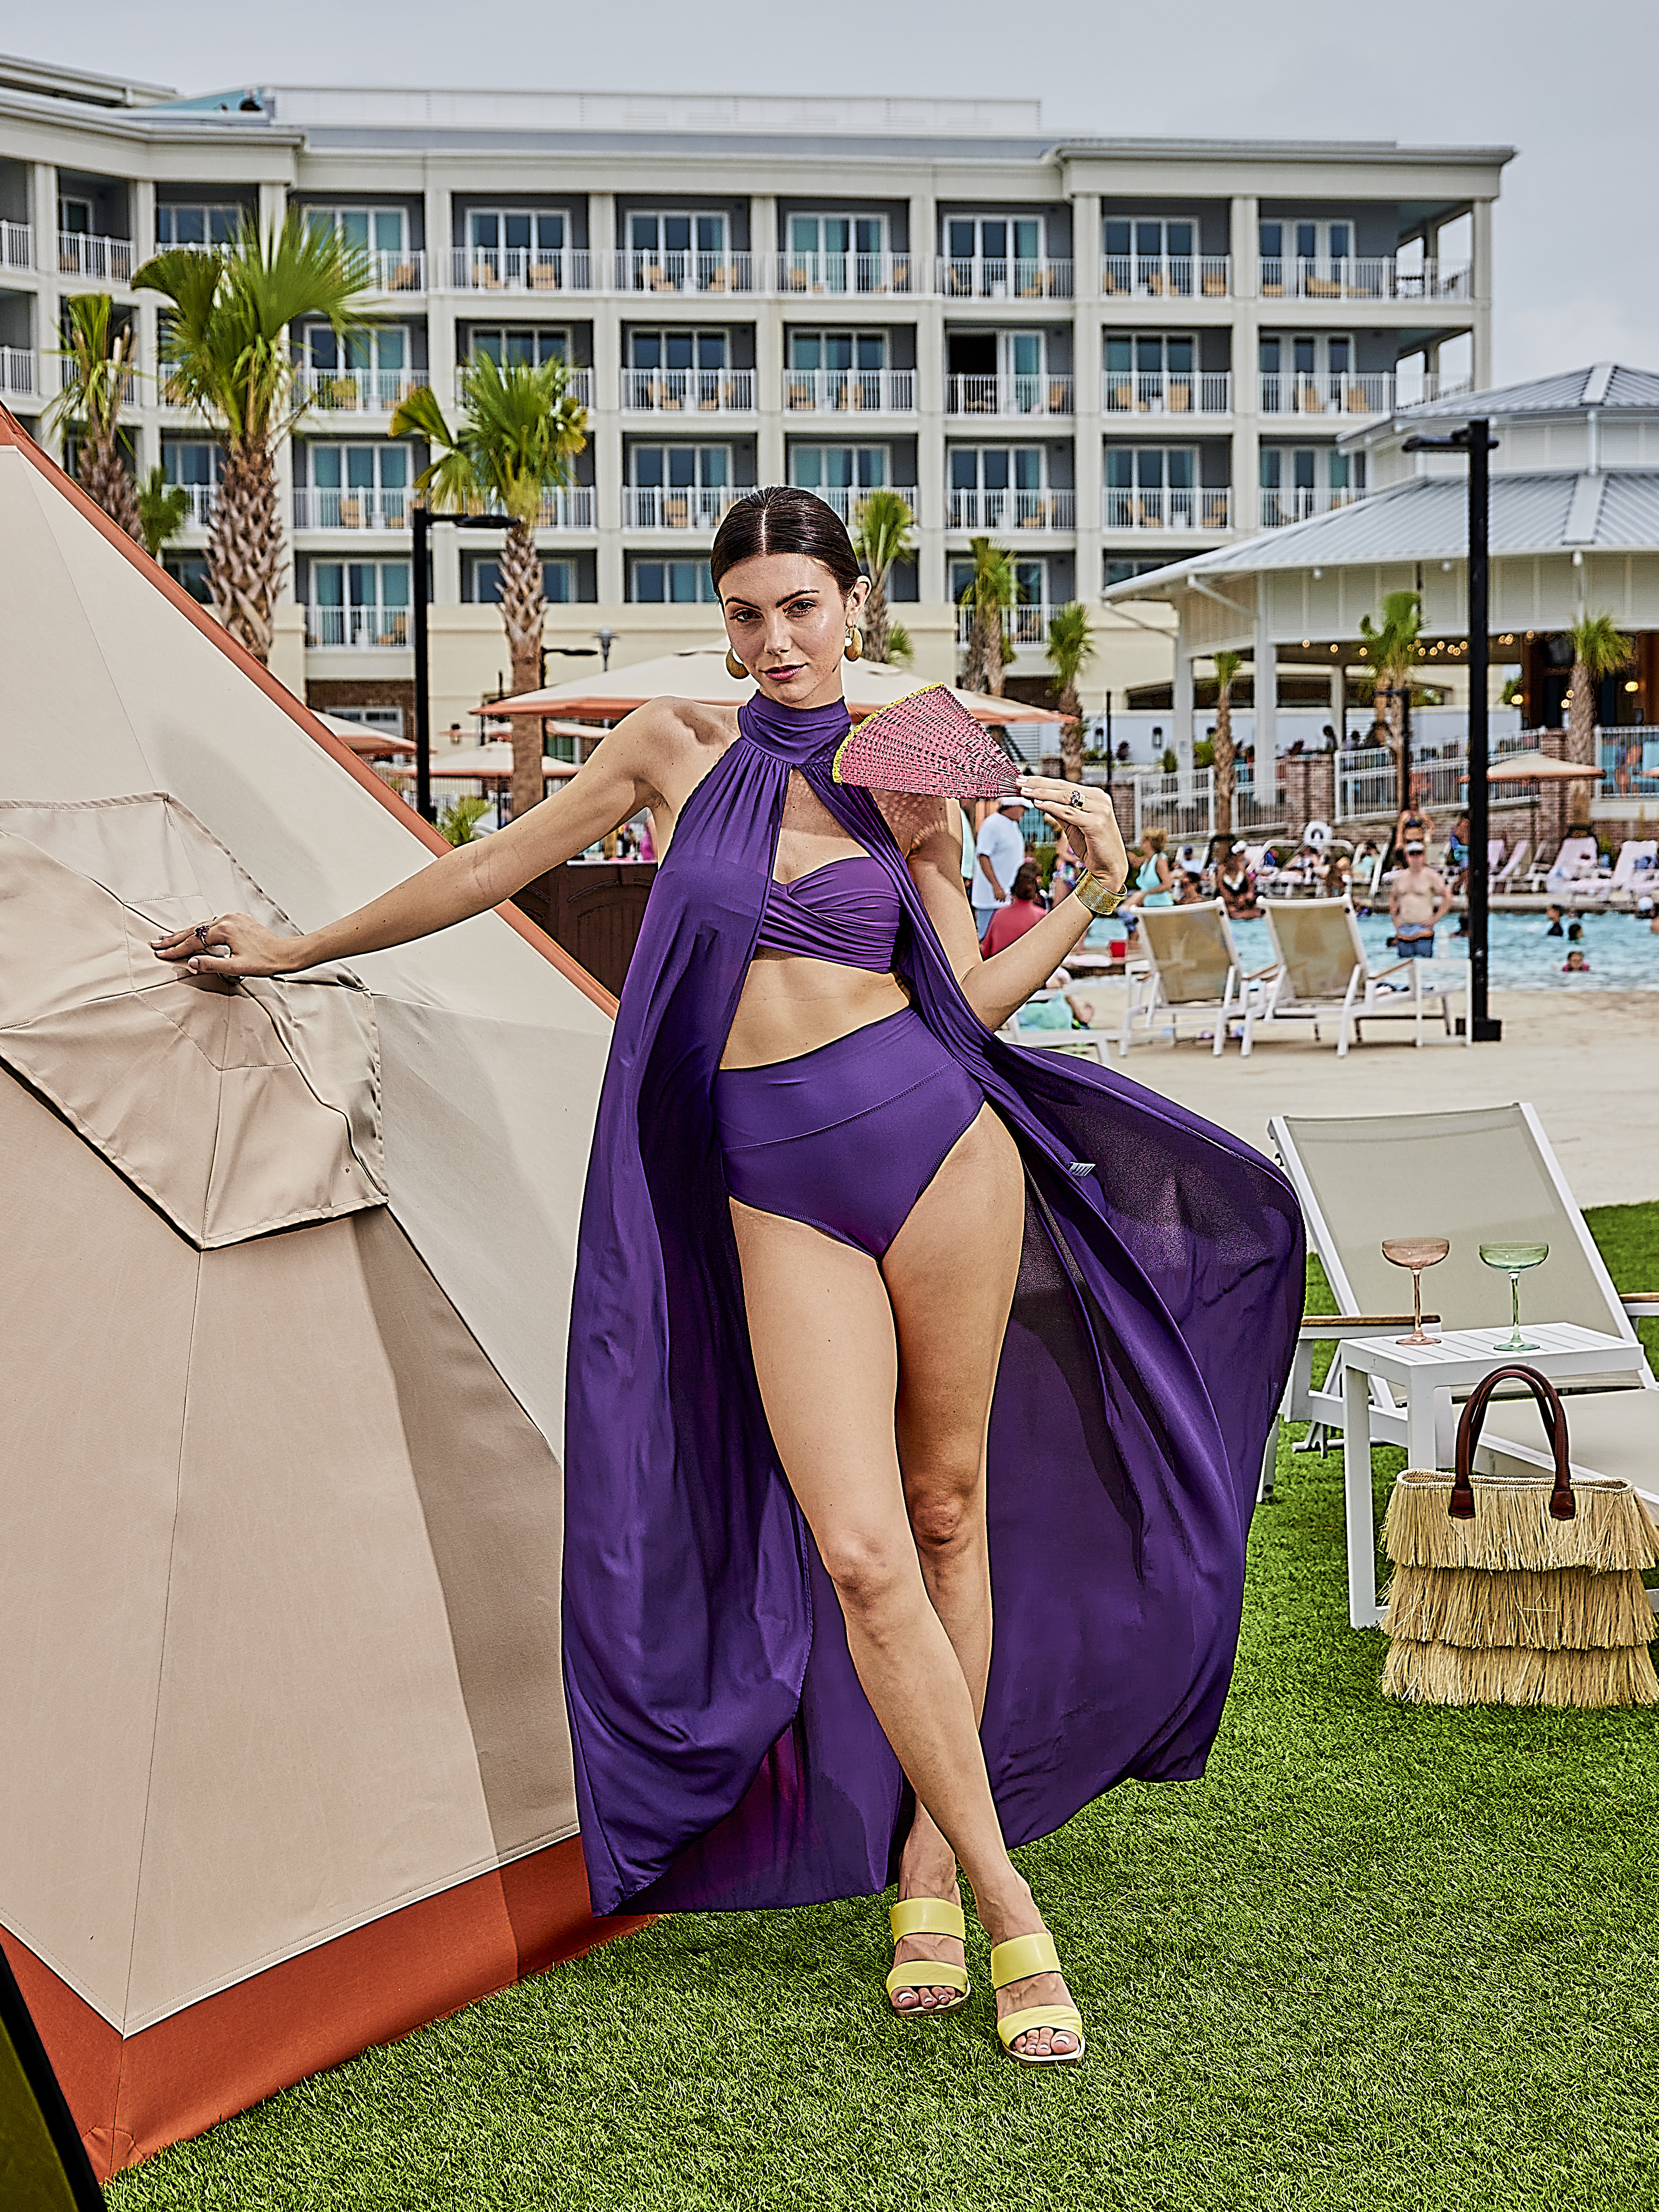 """Purple Reign: Twist-front bandeau, $94, high-waist bottom, $74, and cover-up, $149, all at Tara Grinna at The Shops at Belmond Charleston Place; gold crescent earrings and bangle, $180 each at Seyahan Jewelry; Pe Jay Creations mixed gemstone cluster ring, $1,630, and amethyst fashion ring, $4,880, both at Diamonds Direct; Roberto Coin """"Love in Verona"""" band with diamond accent, $3,500 at M.P. Demetre Jewelers; Anthony Lent eternity band, price upon request at RTW; A.G.L. """"Surin"""" heel, $560 at Gwynn's of Mount Pleasant; fan, $16 at Ibu; Sensi Studio straw bag, $399 at Harper and Hartford; Estelle Colored Glass champagne coupes, $33 each at Gwynn's of Mount Pleasant"""